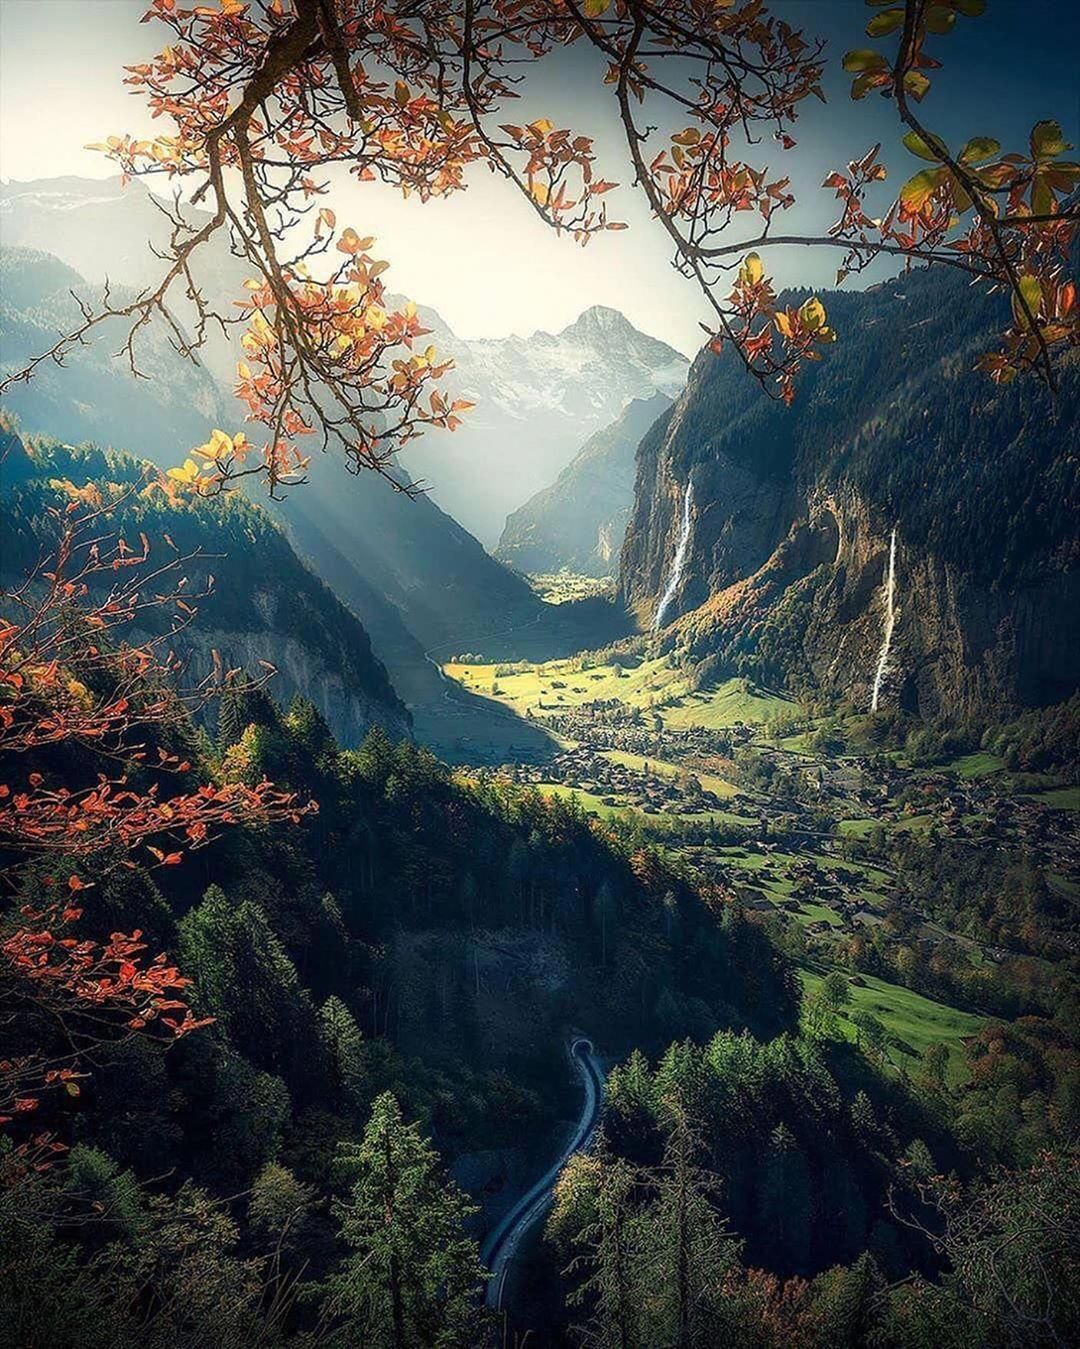 Creative Landscape Photography Landscapephotography In 2020 Vacation Road Trips Vacation Trips Hiking Photography